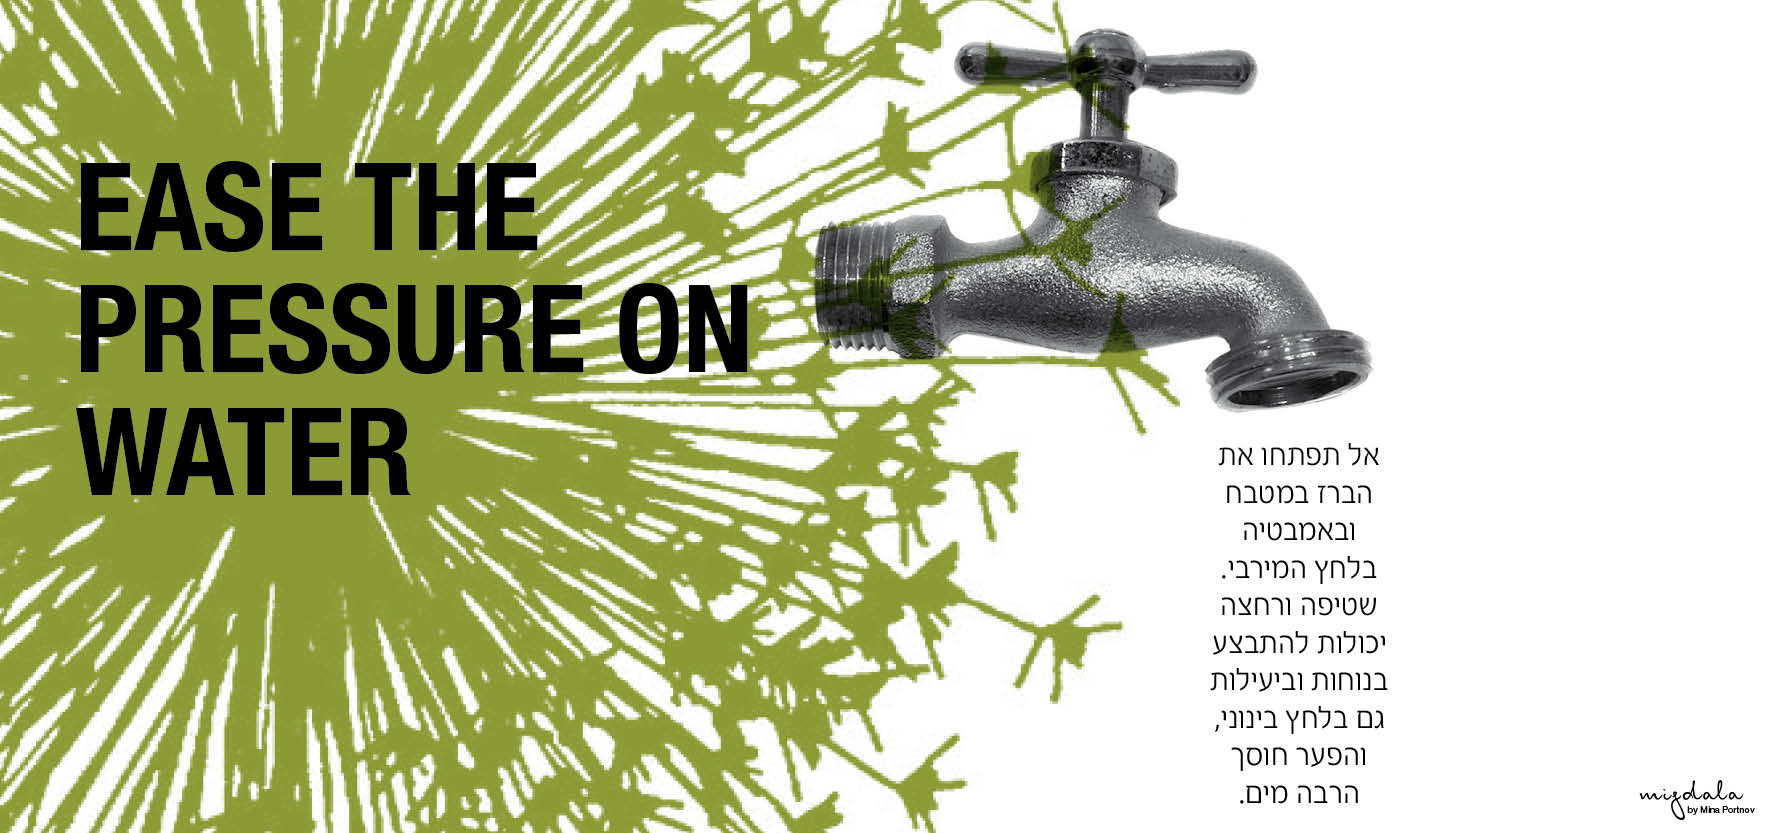 EASE THE PRESSURE ON WATER